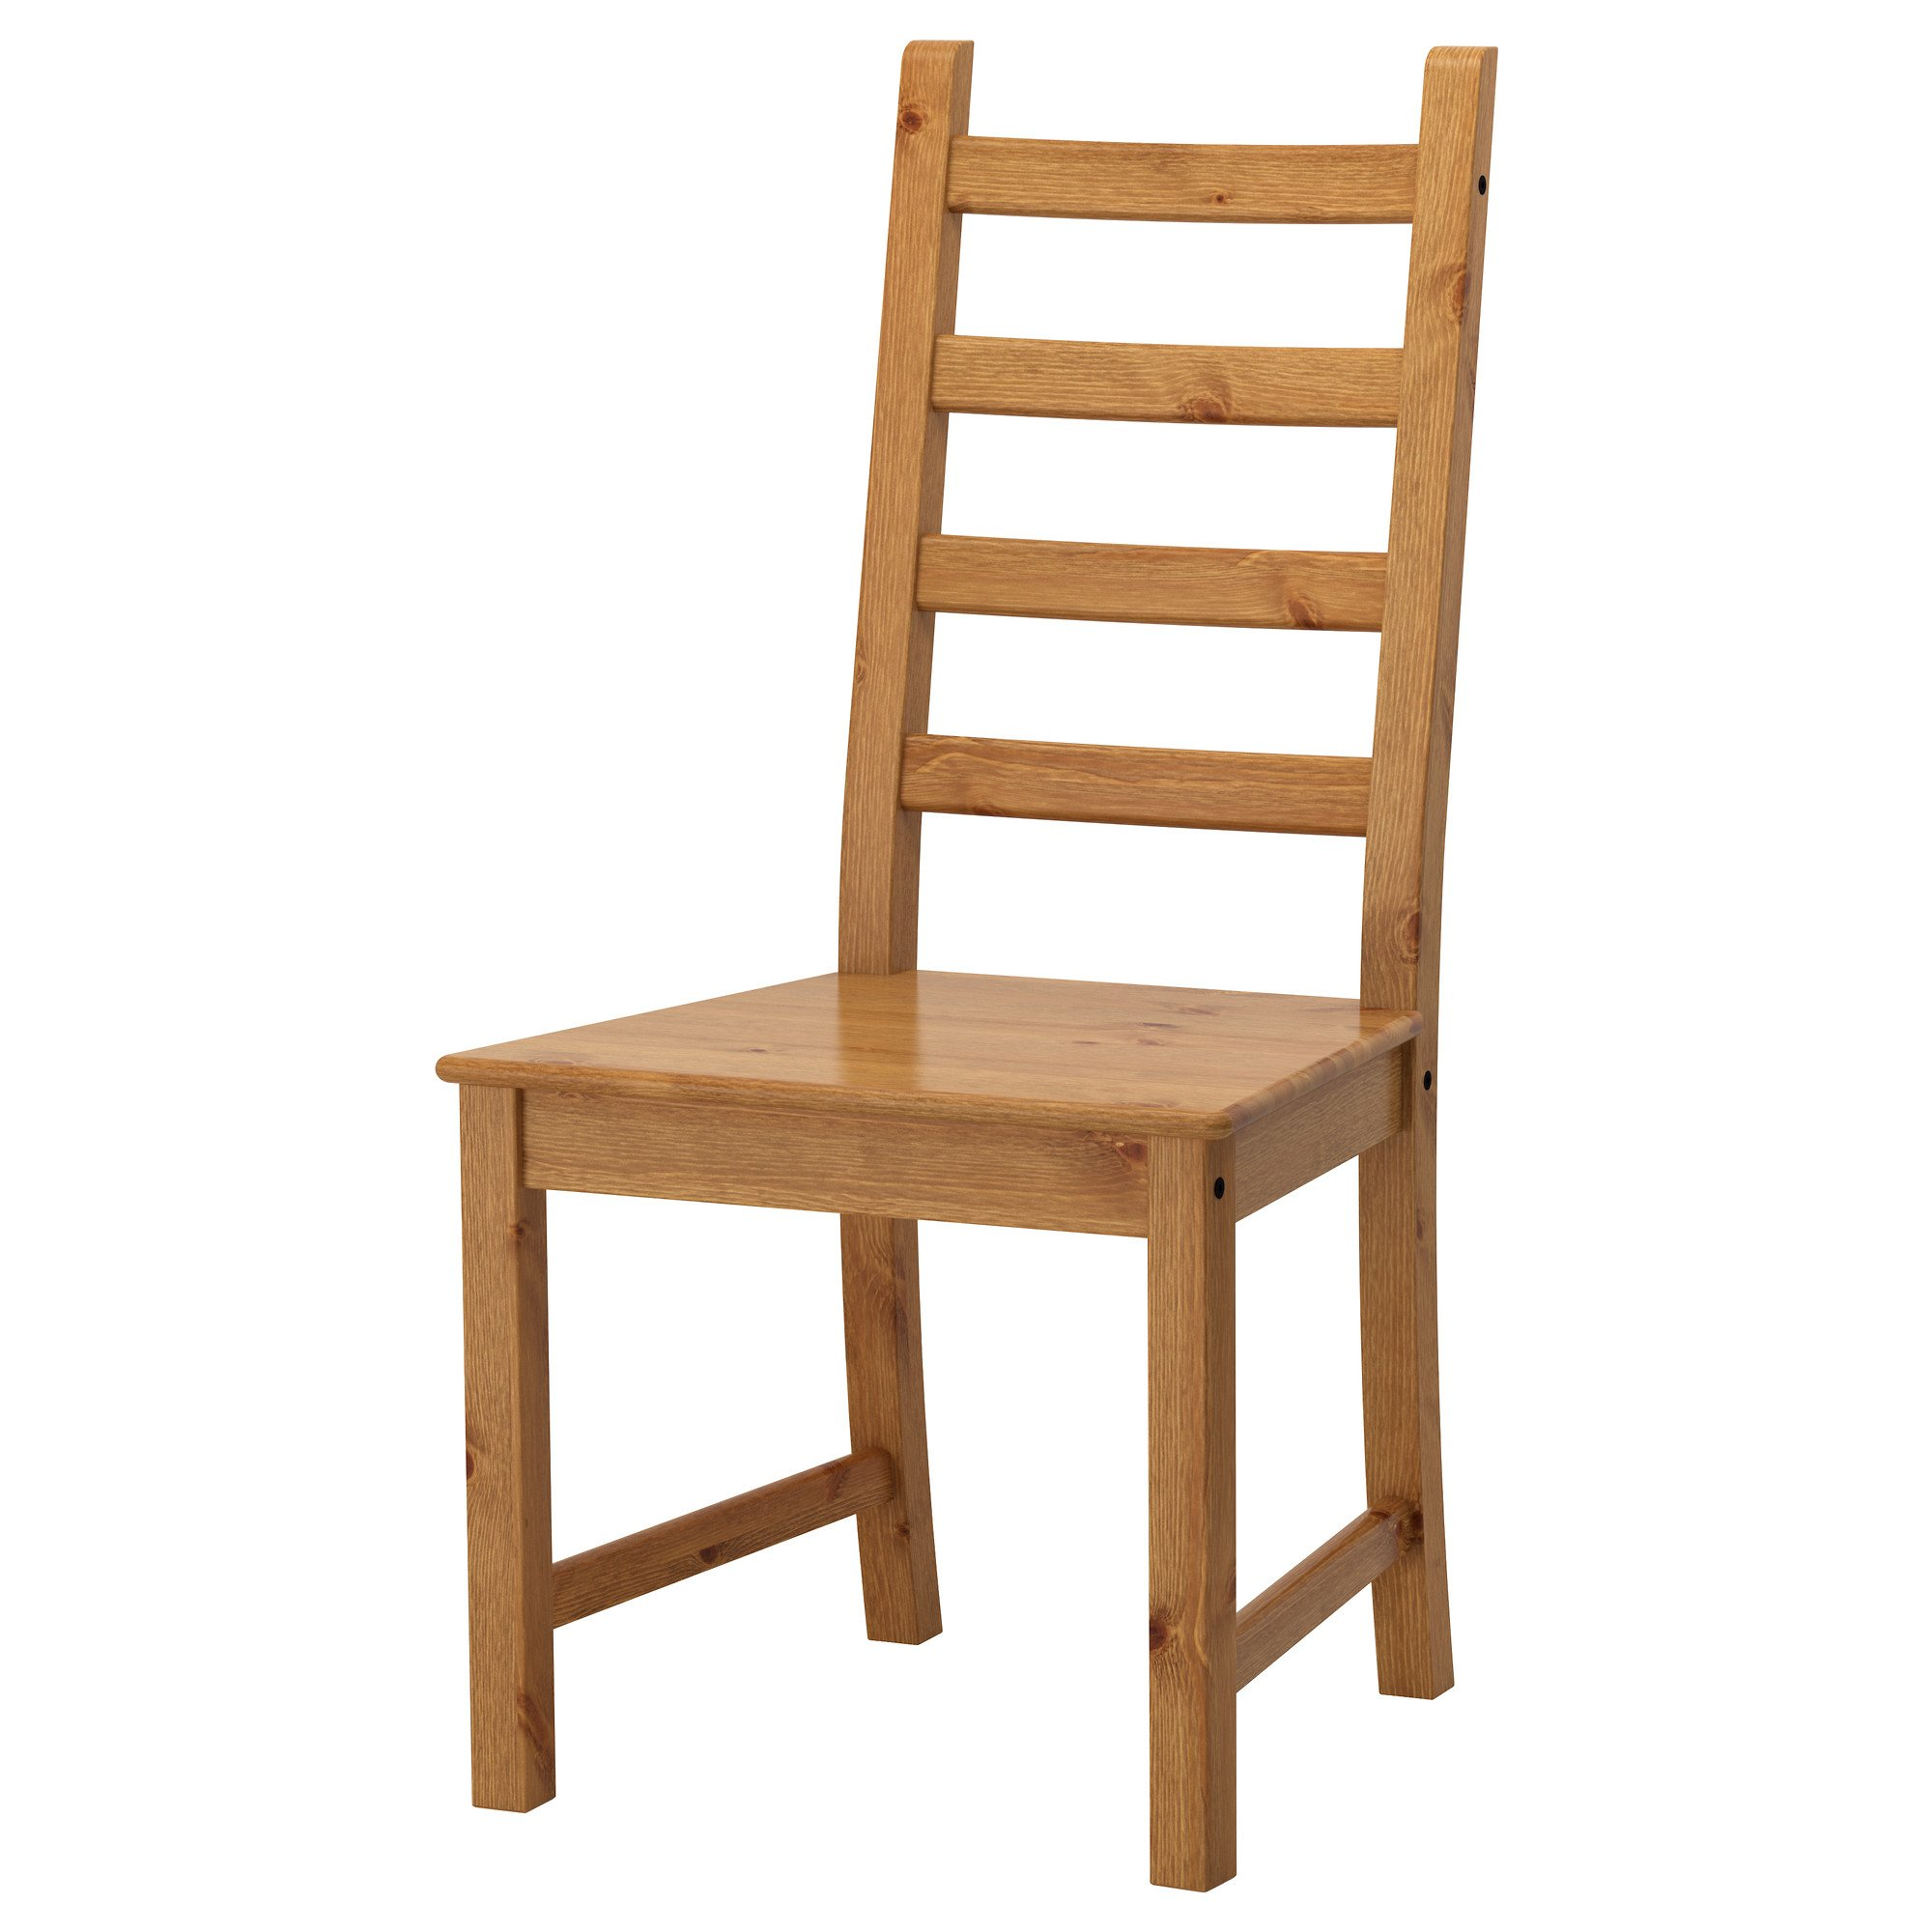 Chair Guy On Twitter Keep Your Eyes Peeled For More Chair